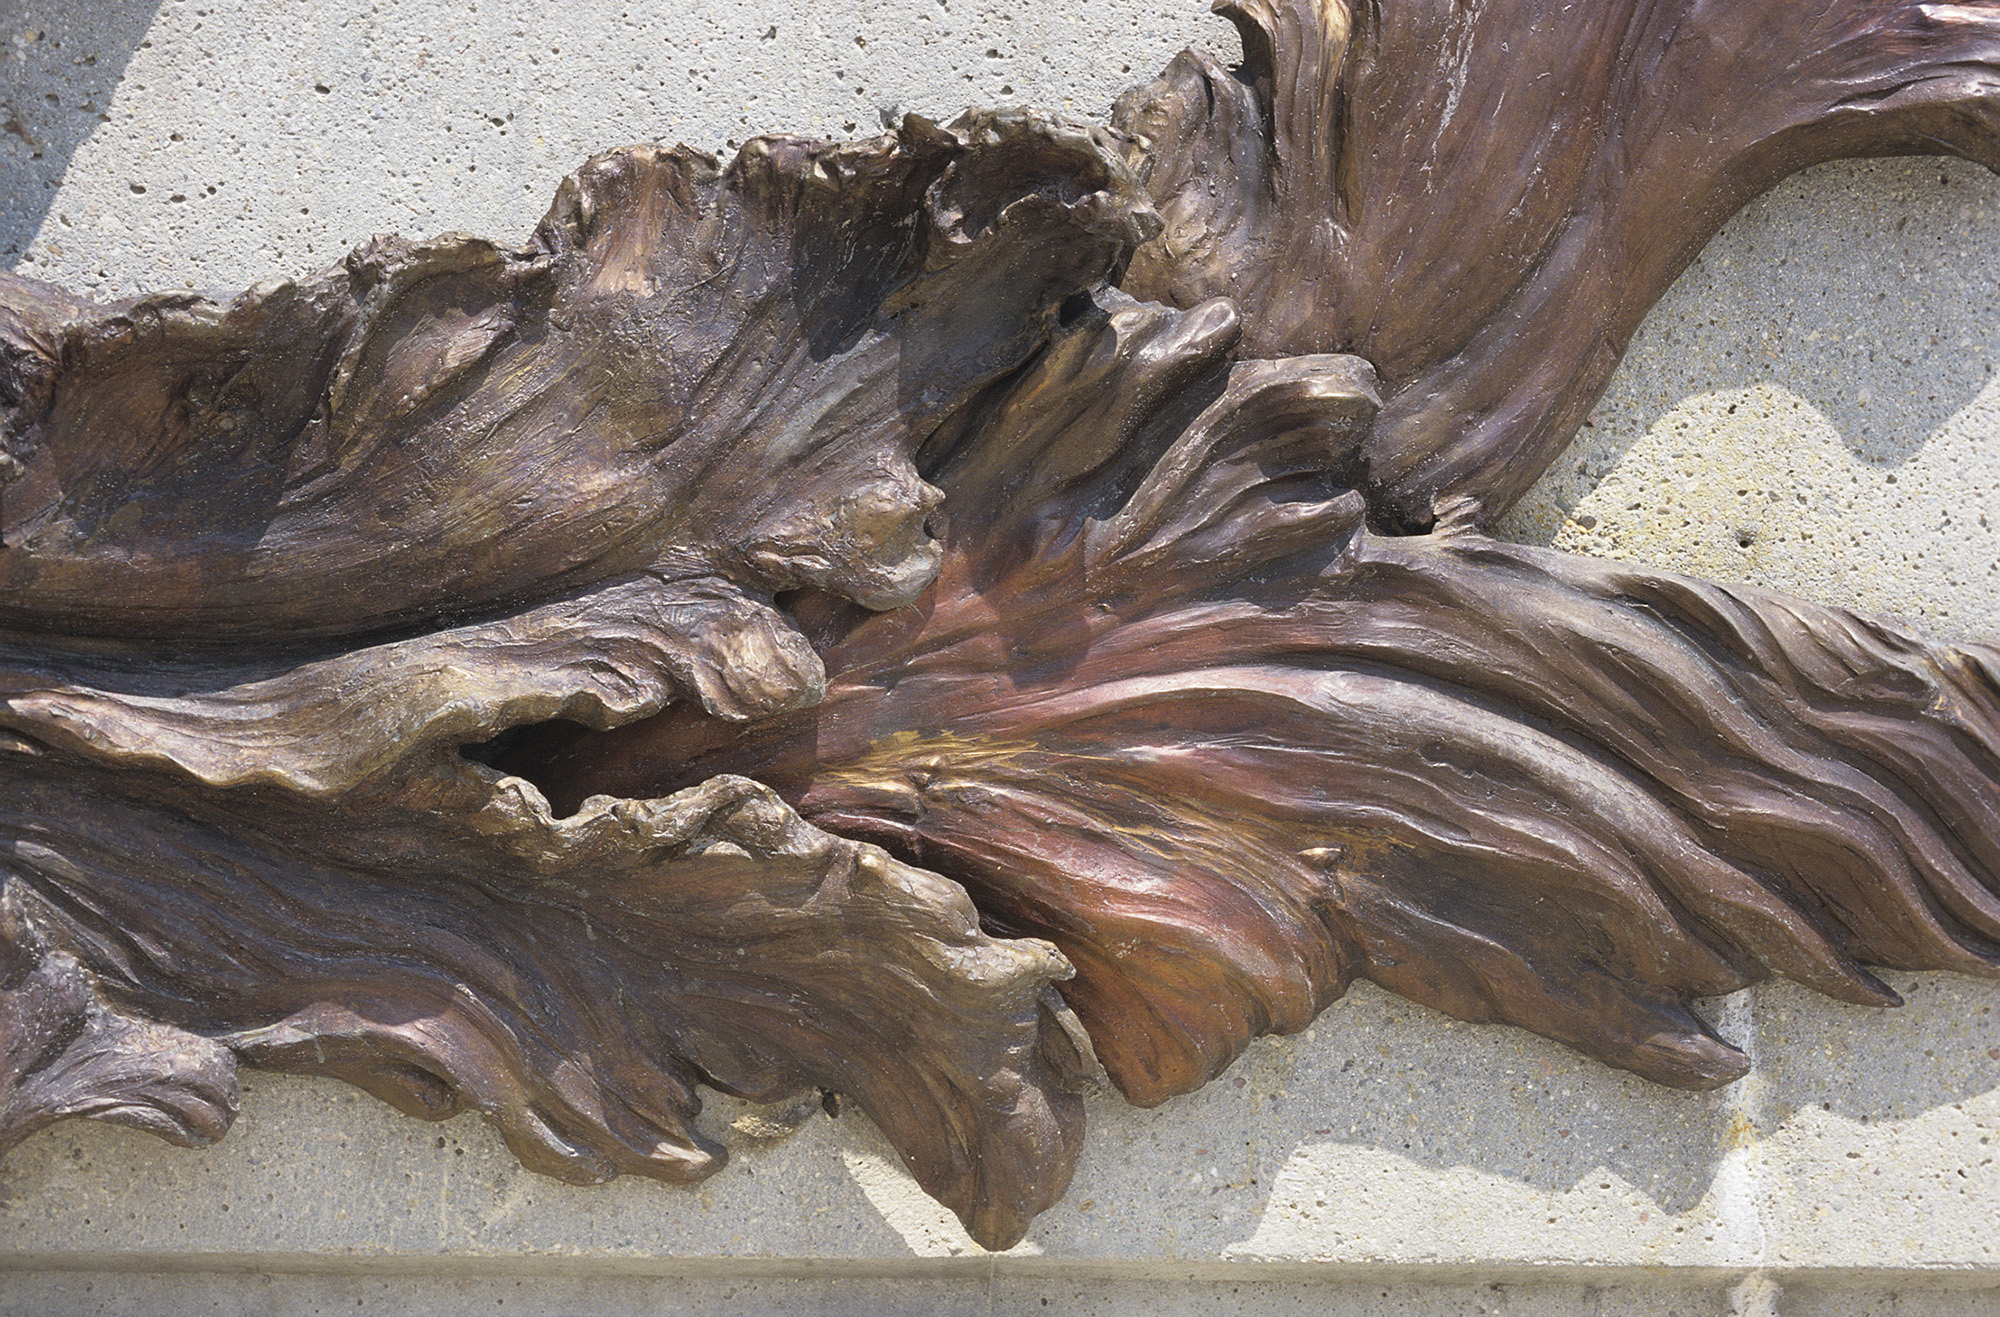 Floodwaters , bronze detail. The bronze has a complex hot patina using ferric oxide, liver of sulphur, and other acids, finished with a hot wax and buffed. This  gives it its variegated, shifting colors.